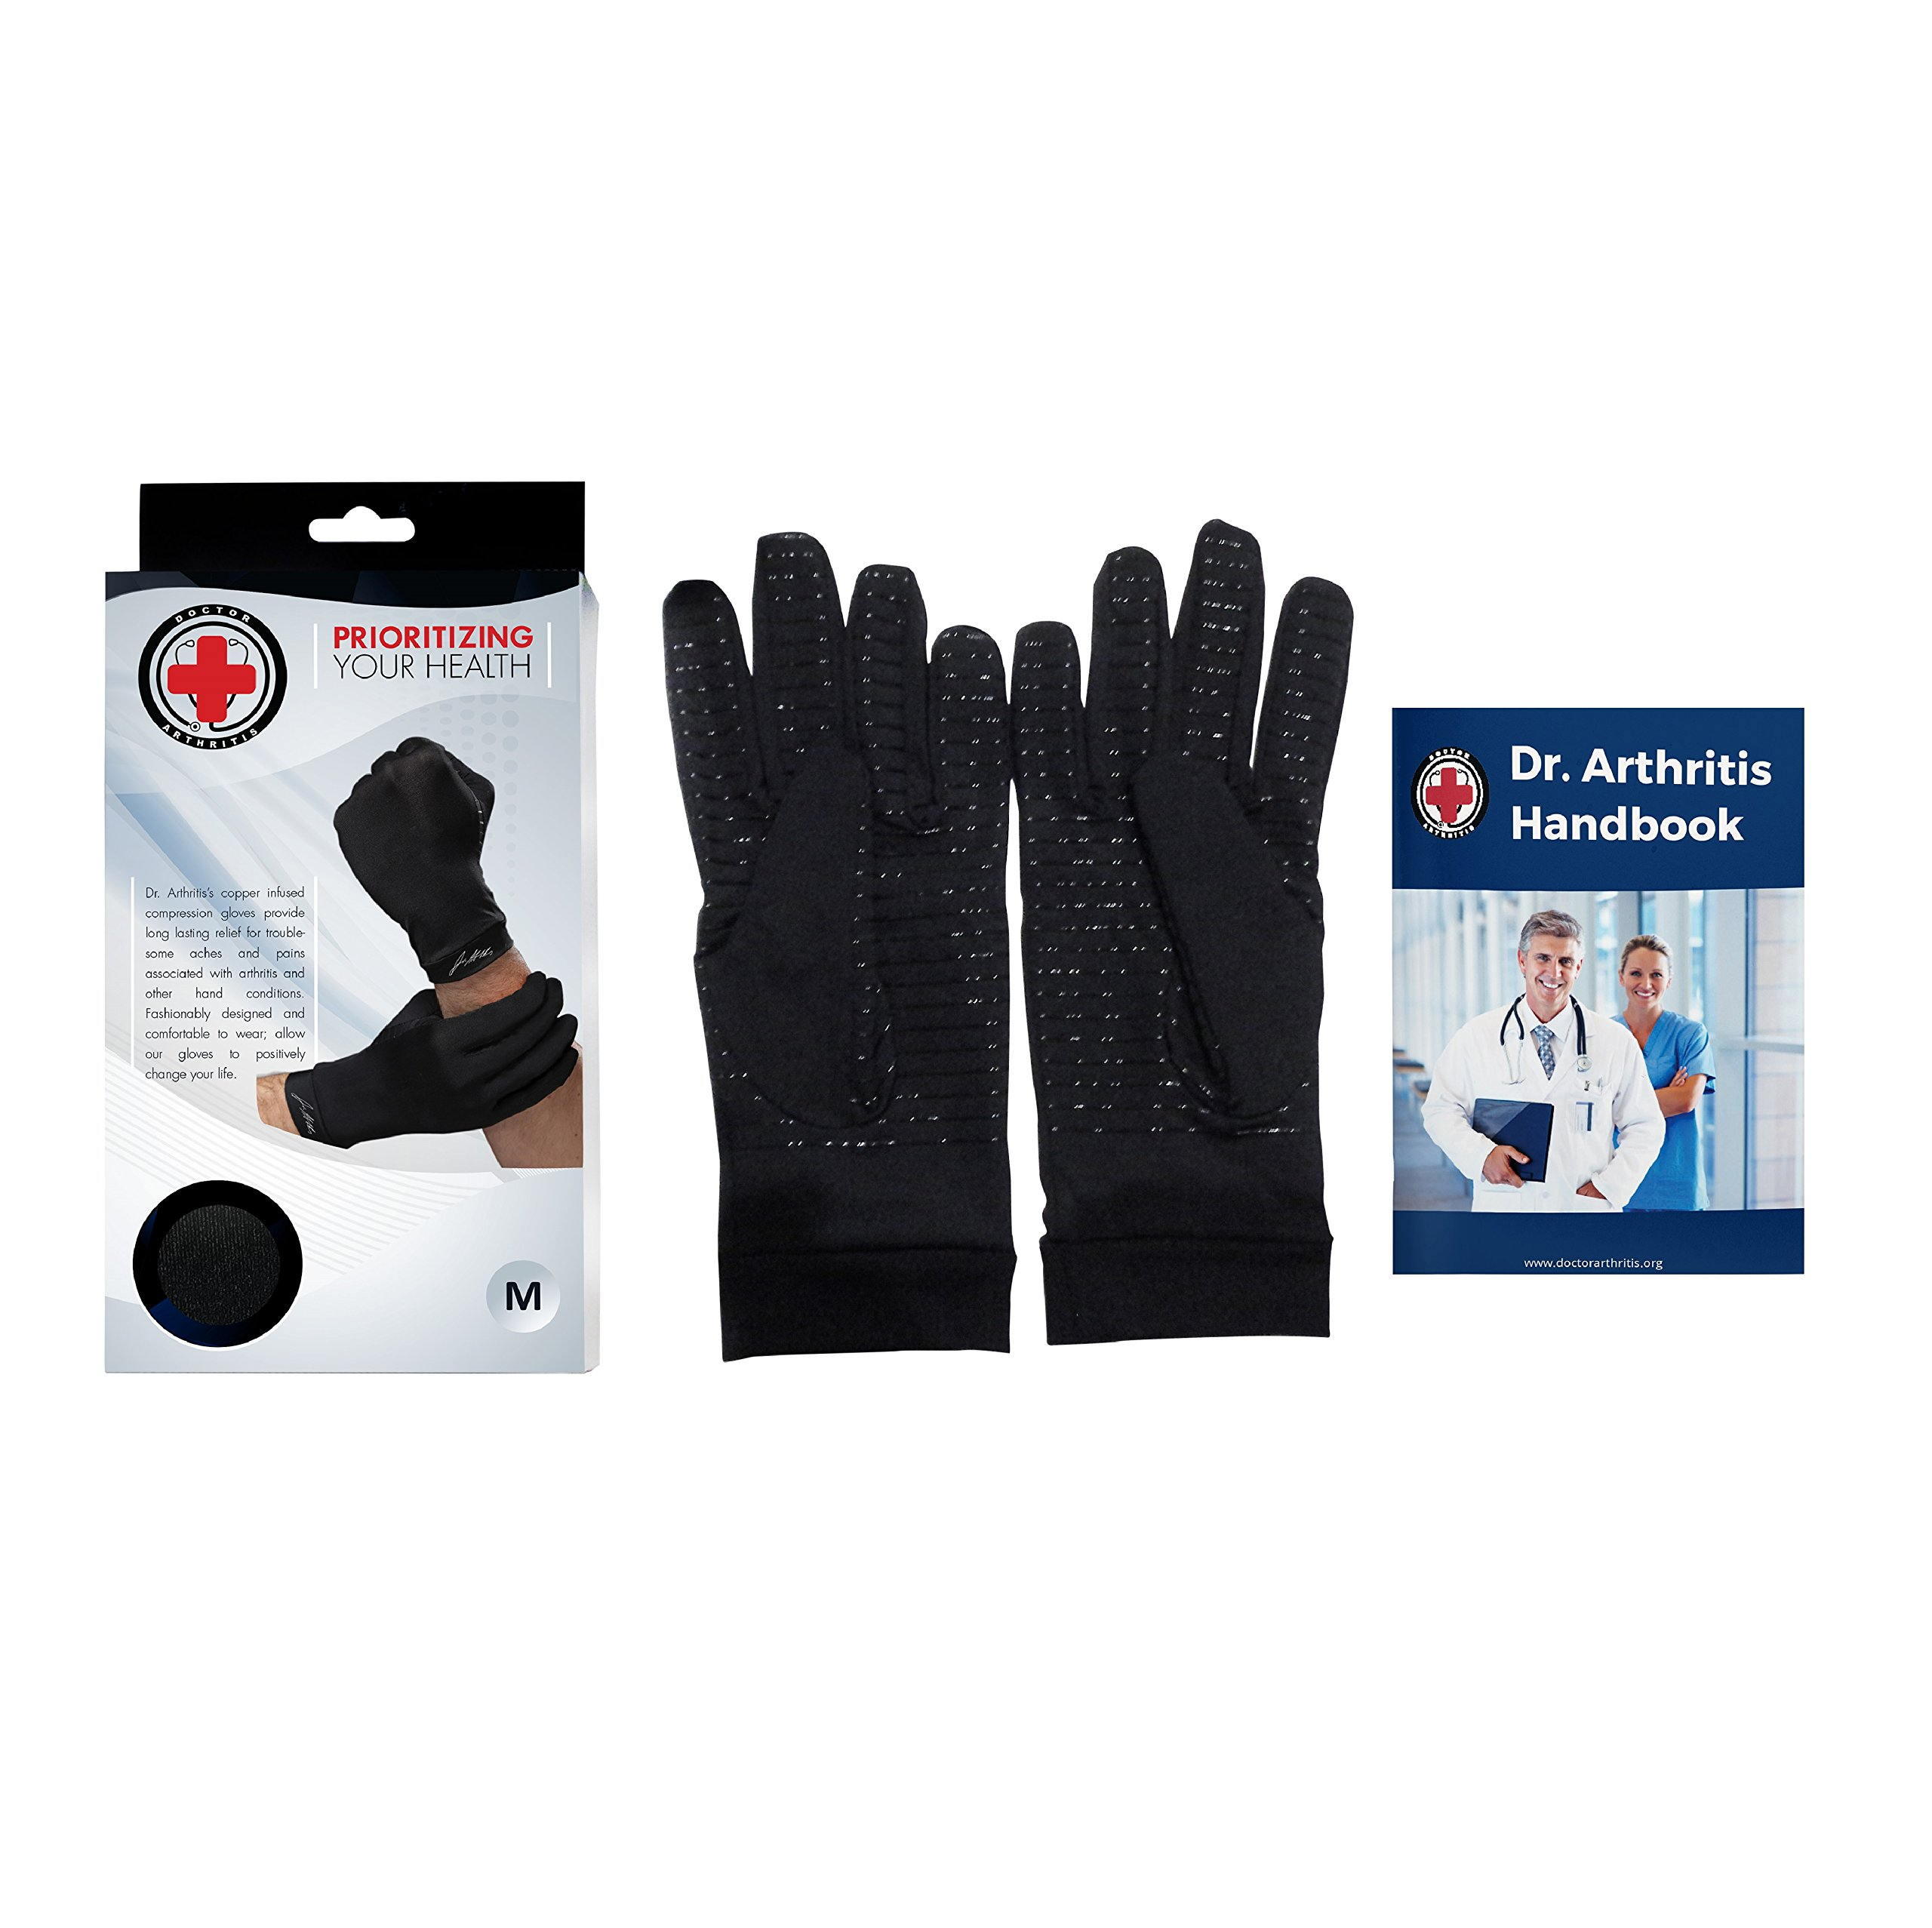 Doctor Developed Copper Gloves/Compression Gloves For Arthritis (full-length) AND DOCTOR WRITTEN HANDBOOK— Relieve Arthritis Symptoms, Raynauds Disease & Carpal Tunnel (L) by Dr. Arthritis (Image #3)